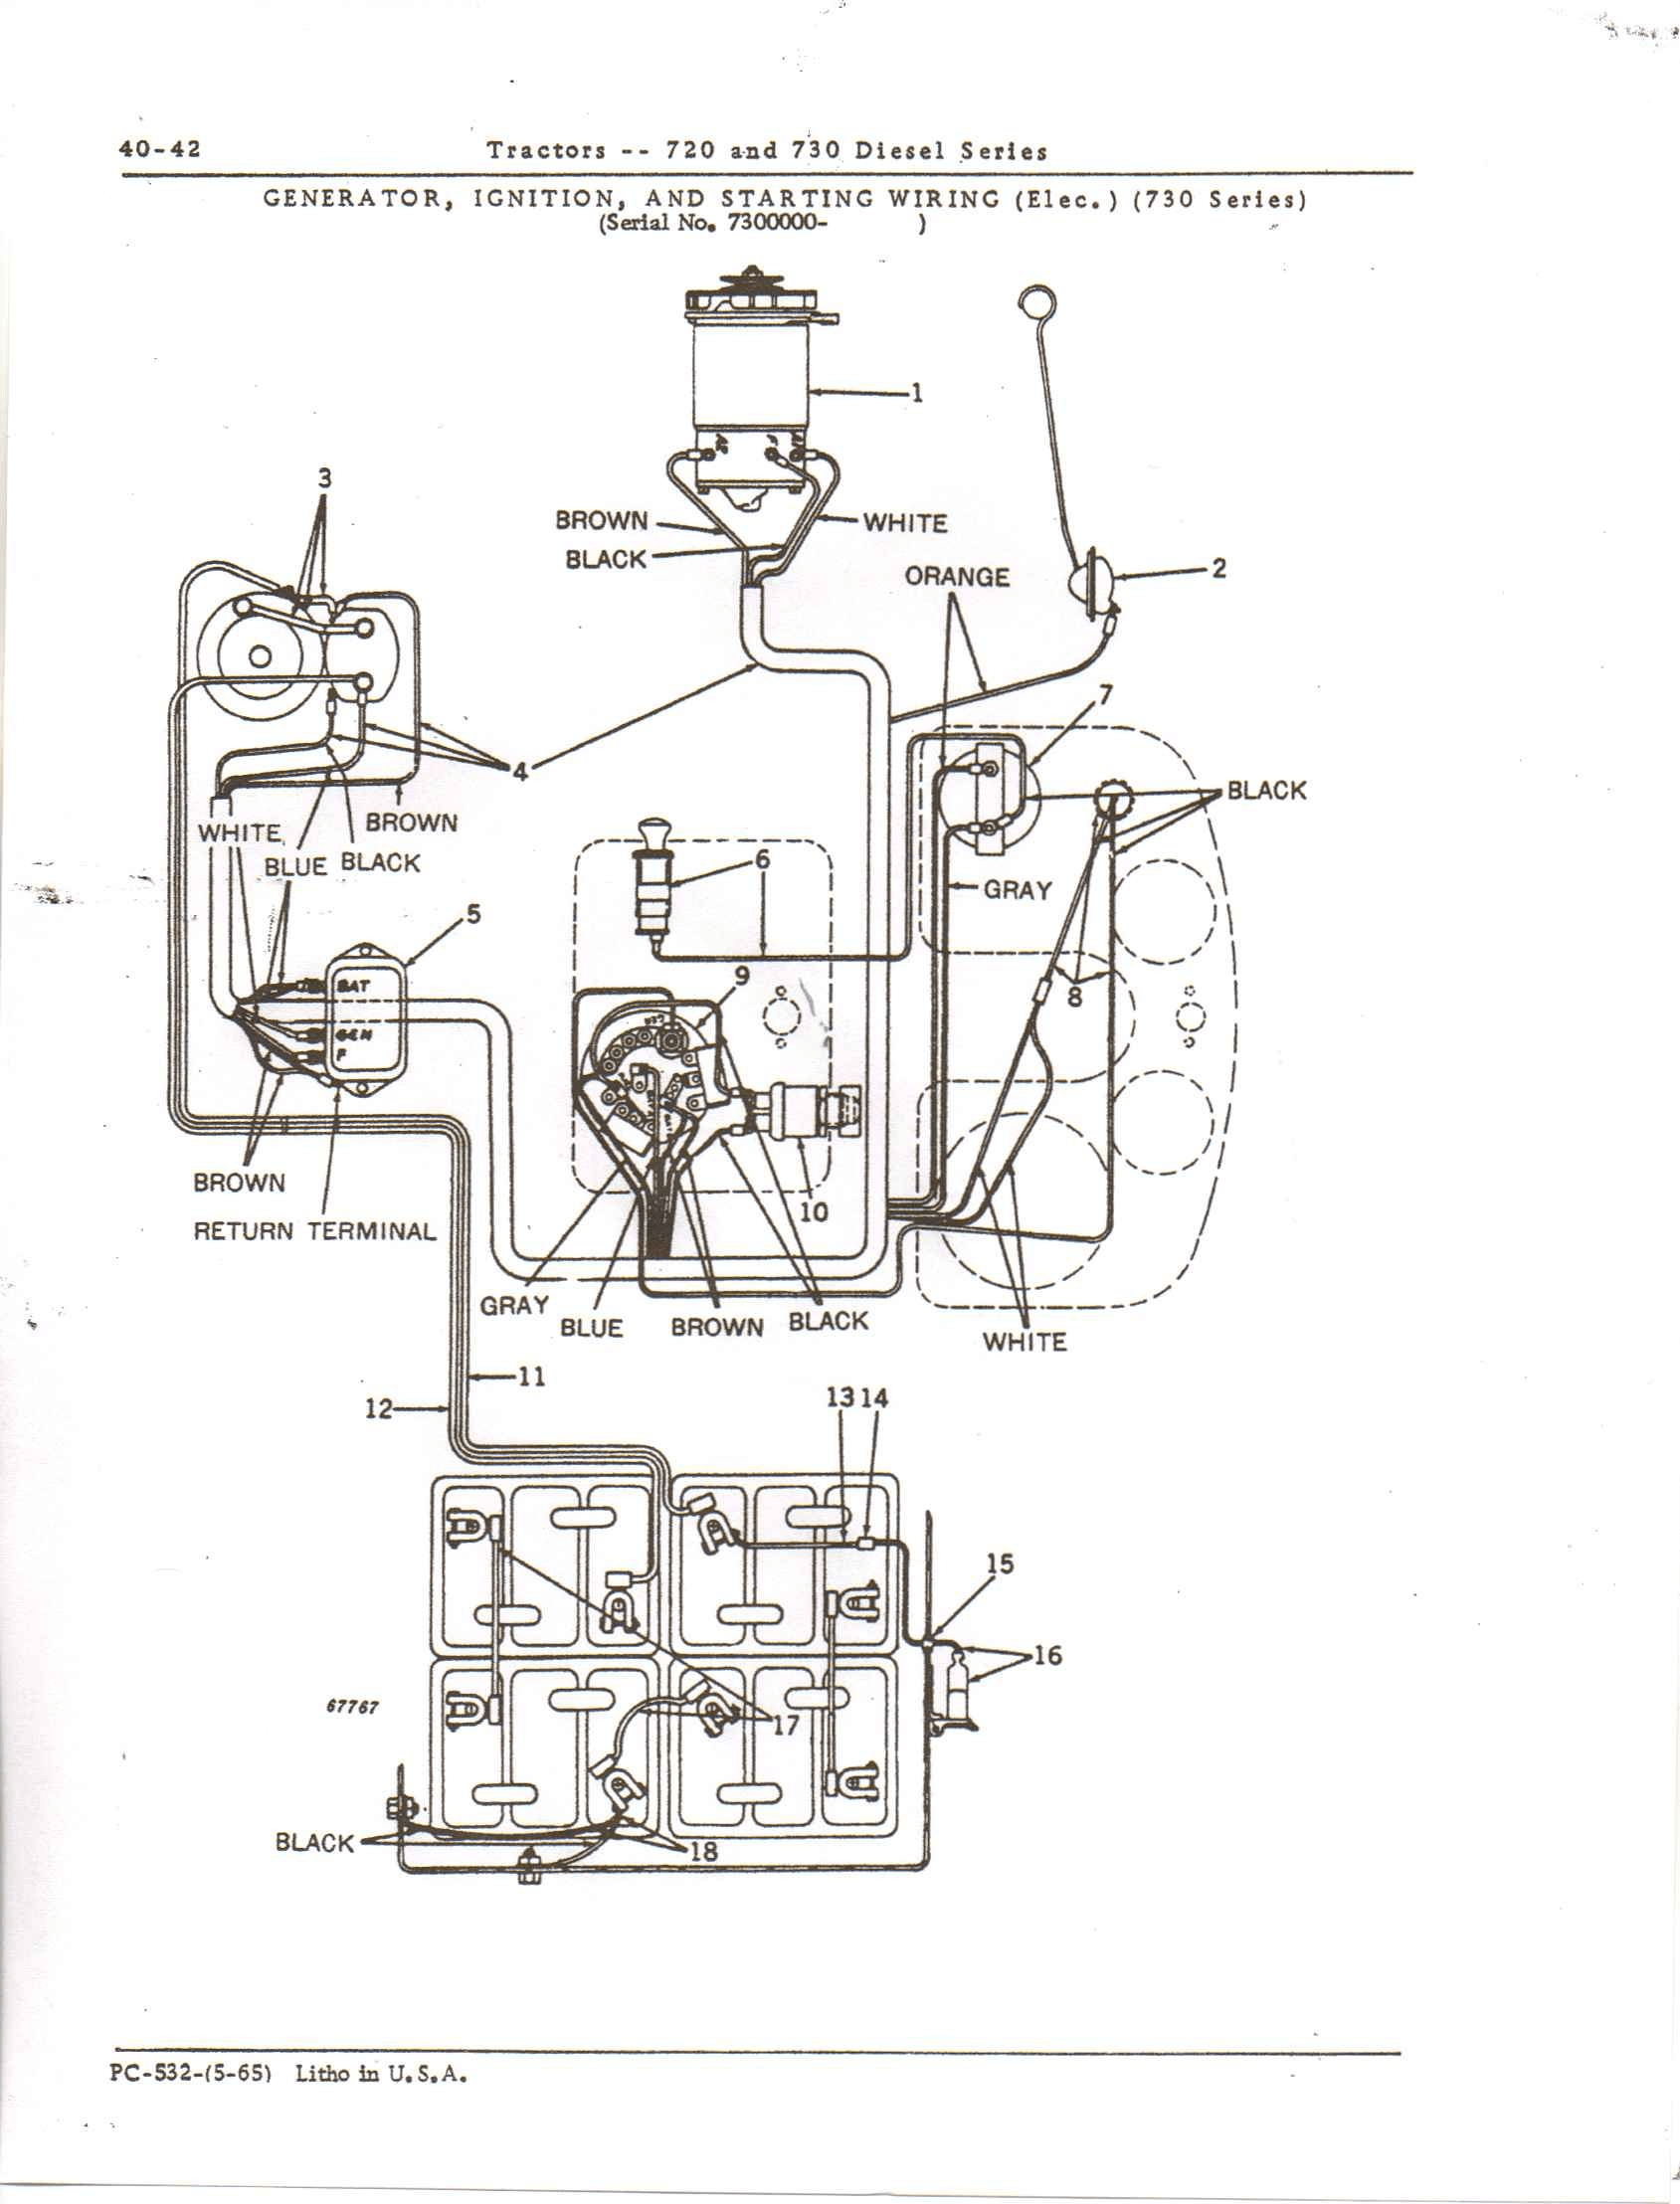 hight resolution of john deere 620 wiring moreover john deere lawn tractor voltage wiring diagram for a 97 john deere gator 4x2 wiring diagram for john deere g